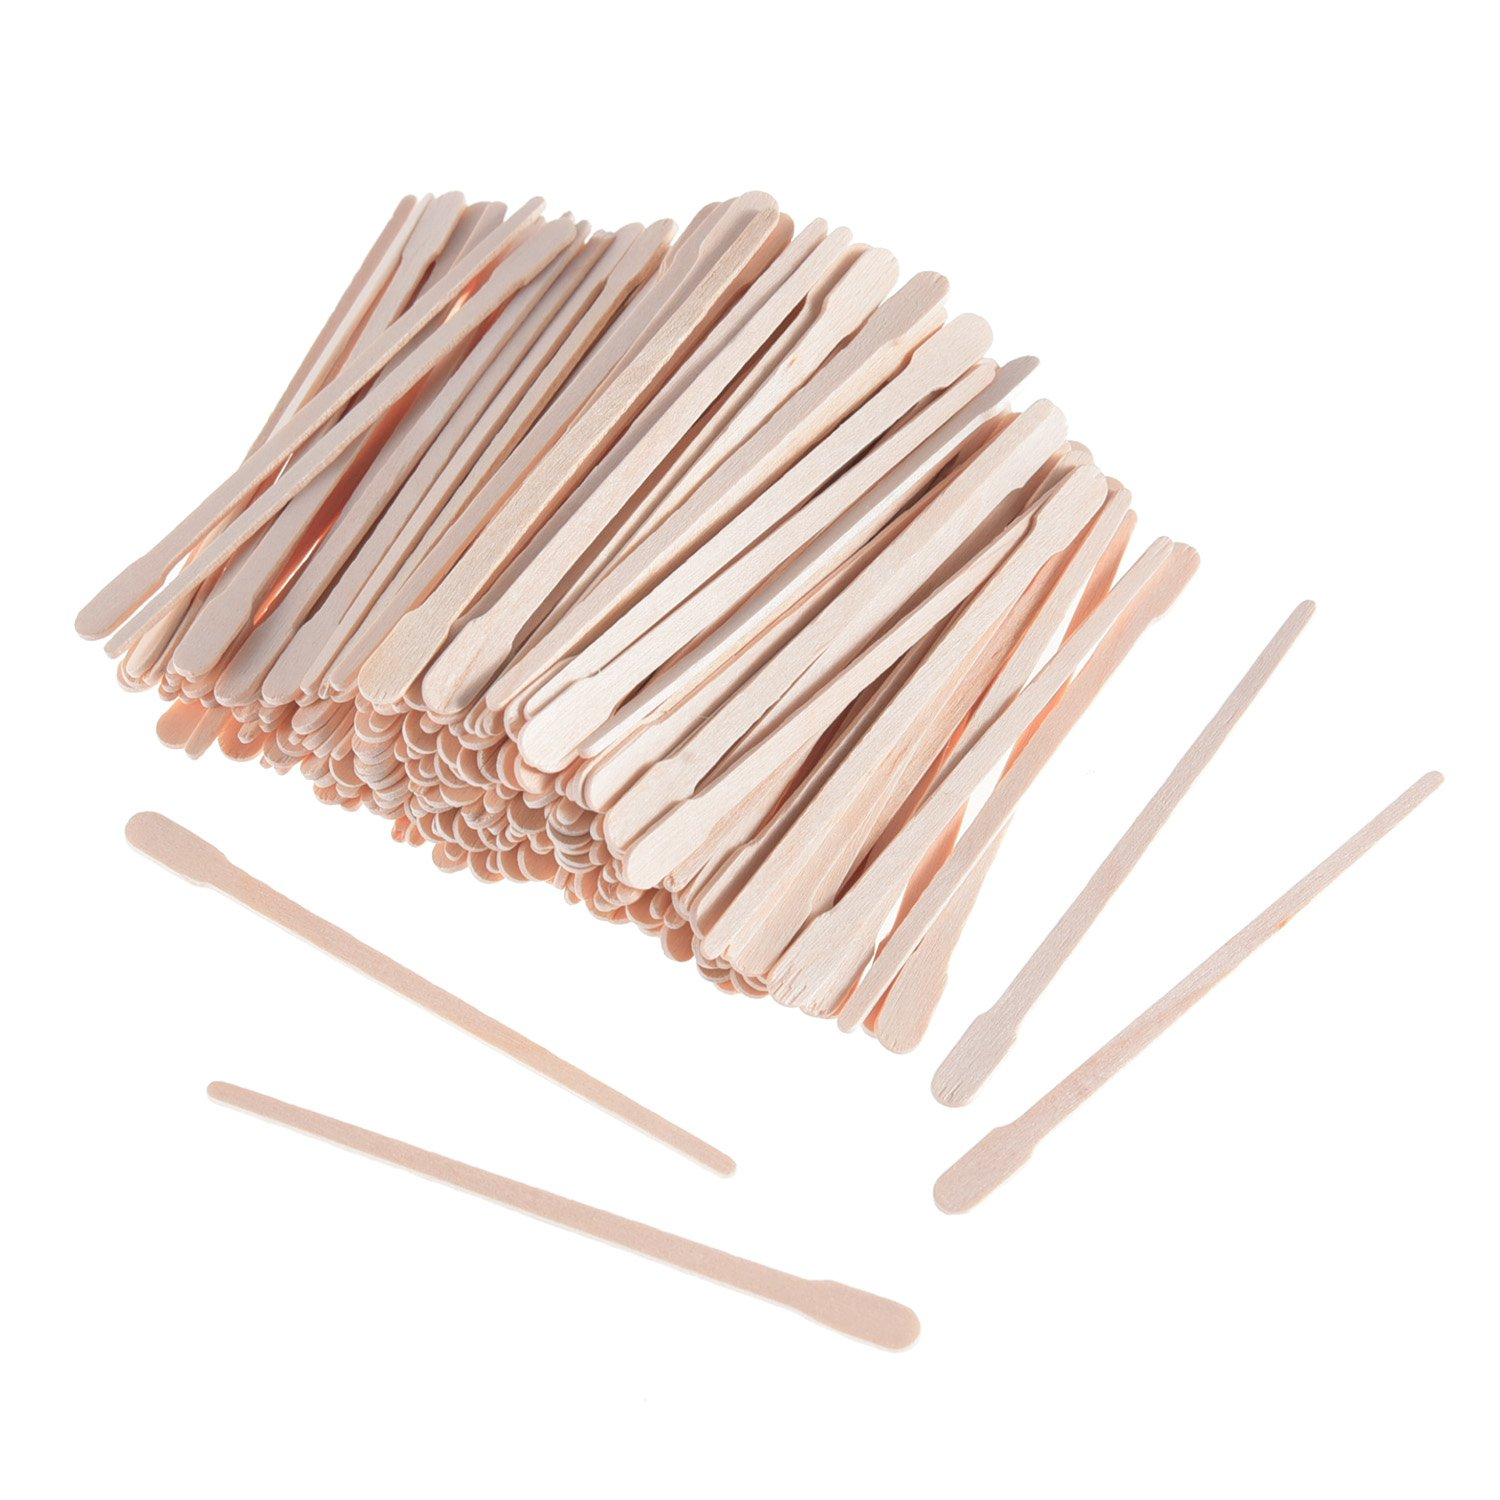 500 Pieces Eyebrow Wood Craft Sticks Waxing Applicator Sticks Body Wax Spatulas for Hair Removal Pangda